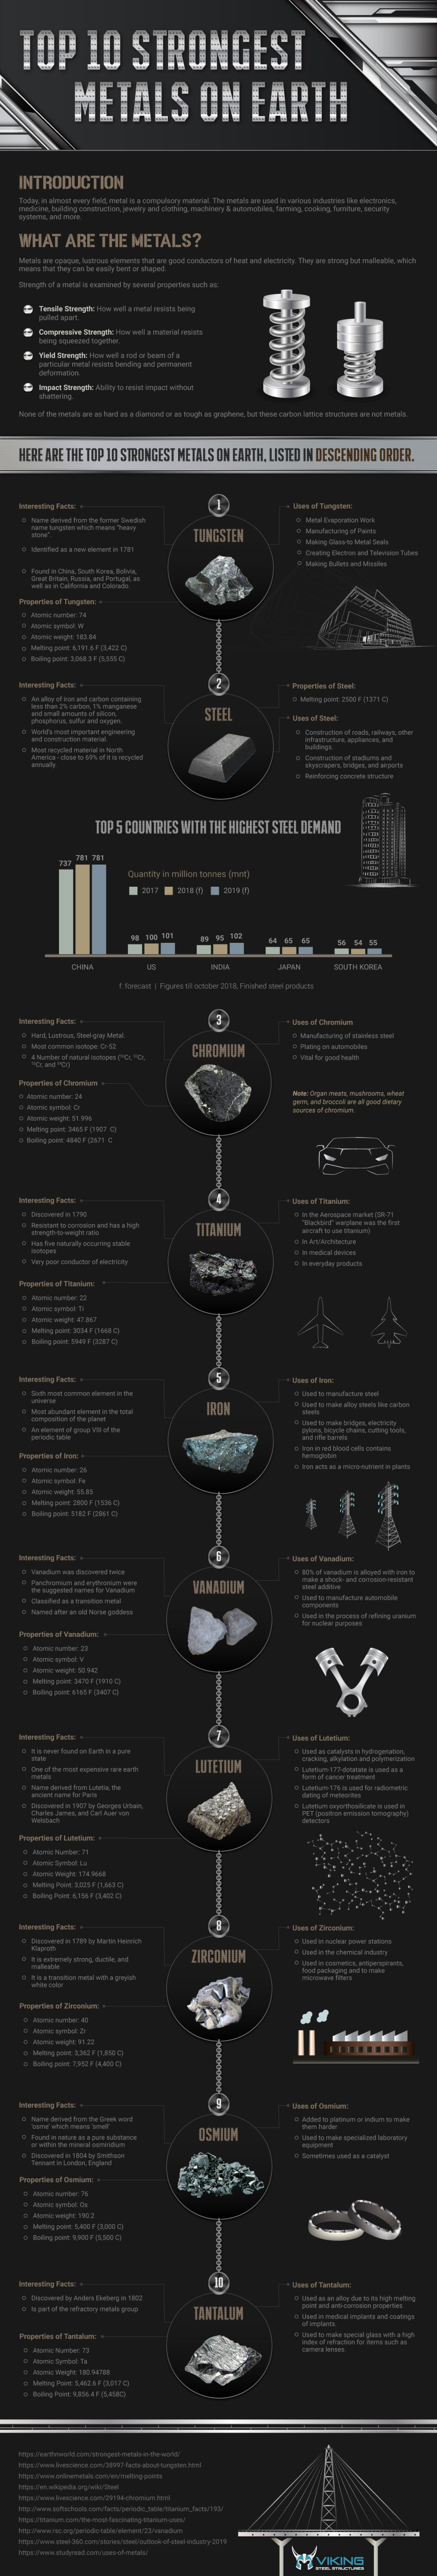 Who's the Strongest of Them All? Earth's 10 Strongest Metals - Infographic